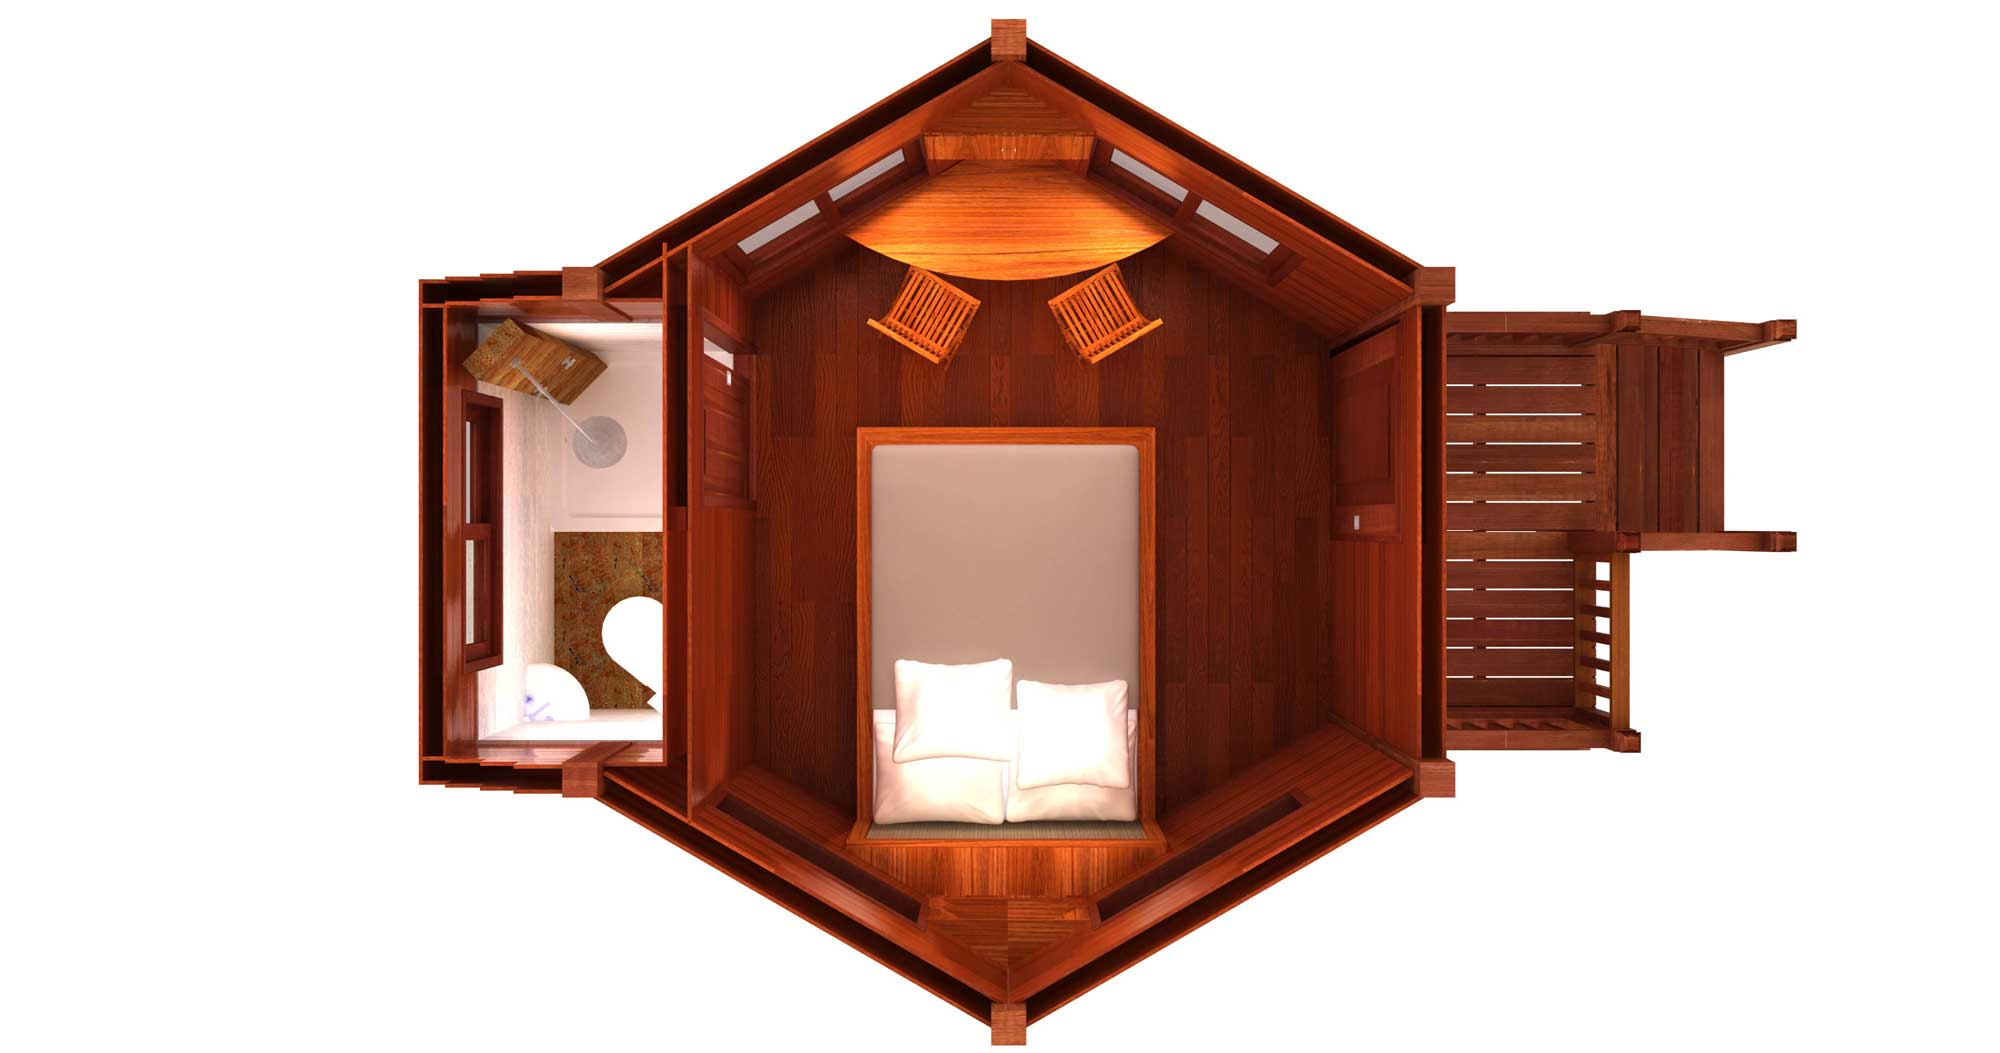 kona karma design prefab home plans teak bali